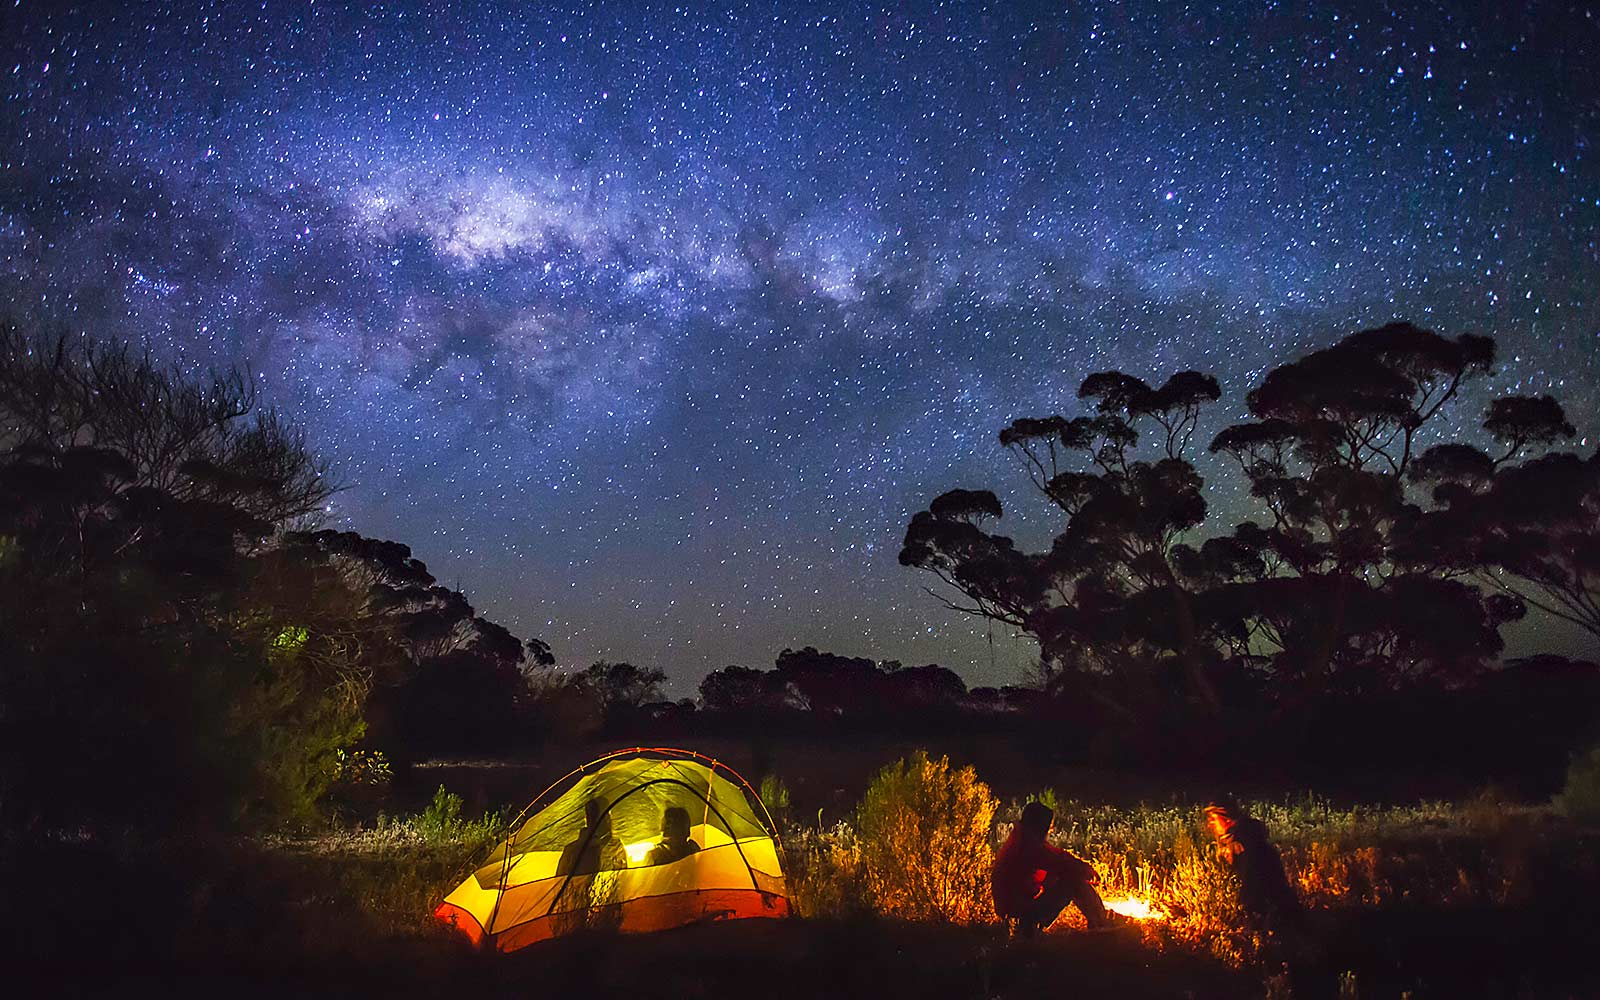 Camping Could Be the Cure If You're Having Trouble Sleeping